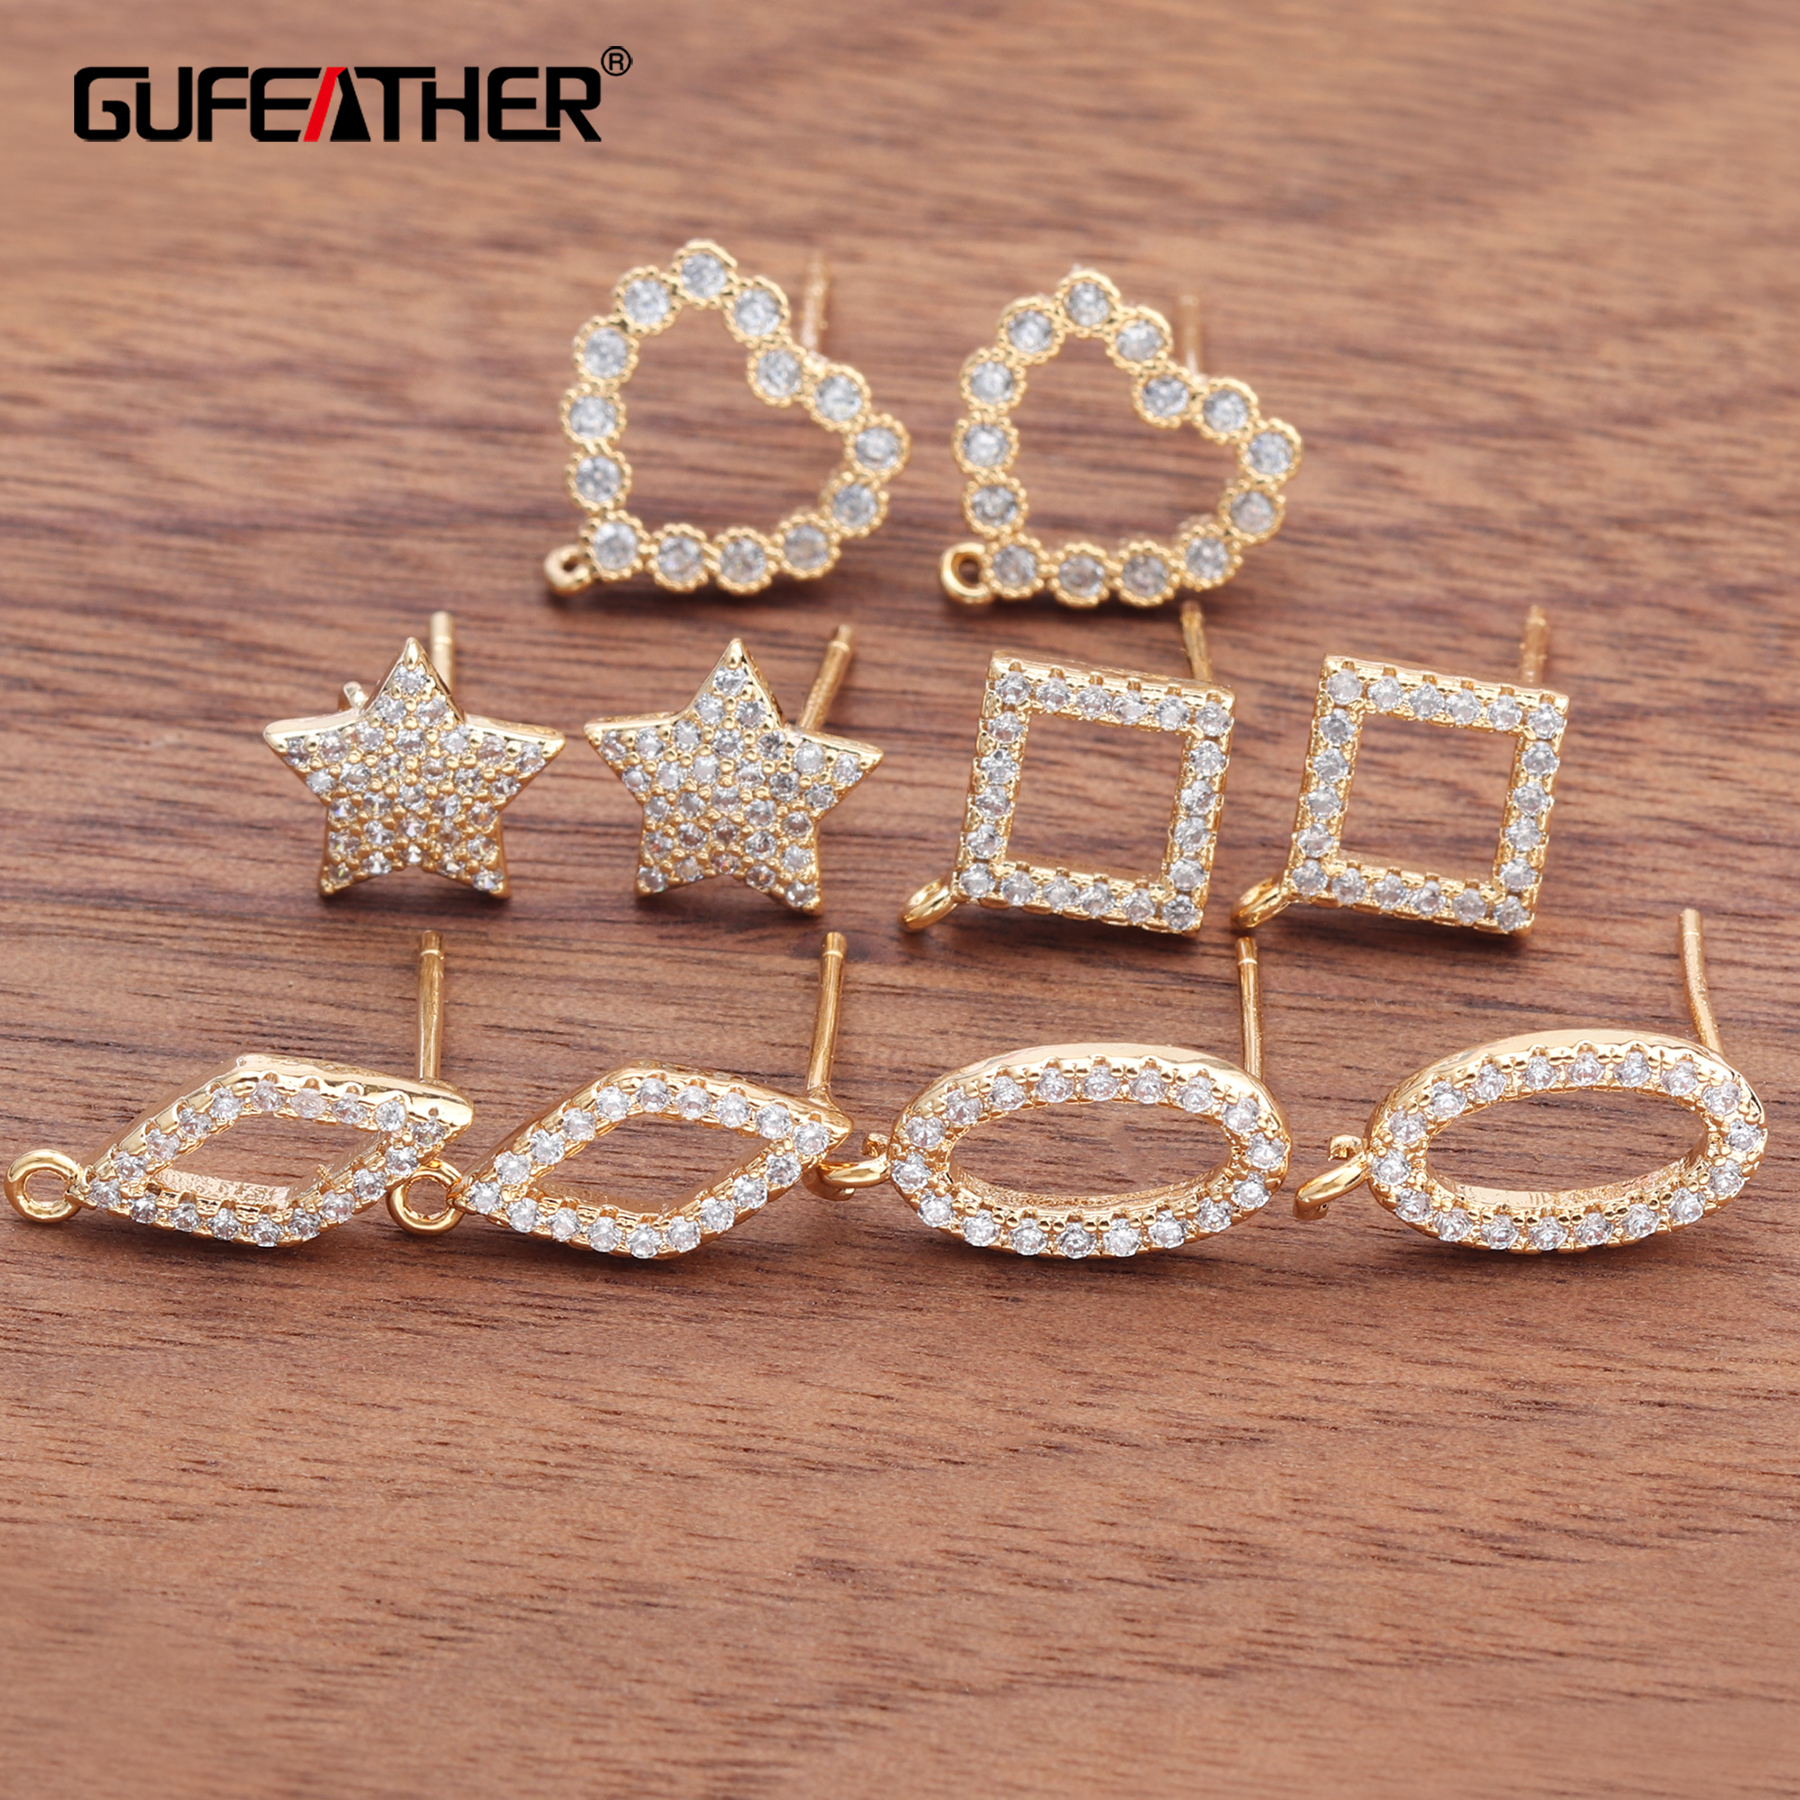 GUFEATHER M652,jewelry Accessories,18k Gold Plated,diy Pendant,jewelry Findings,hand Made,jewelry Making,diy Earrings,10pcs/lot